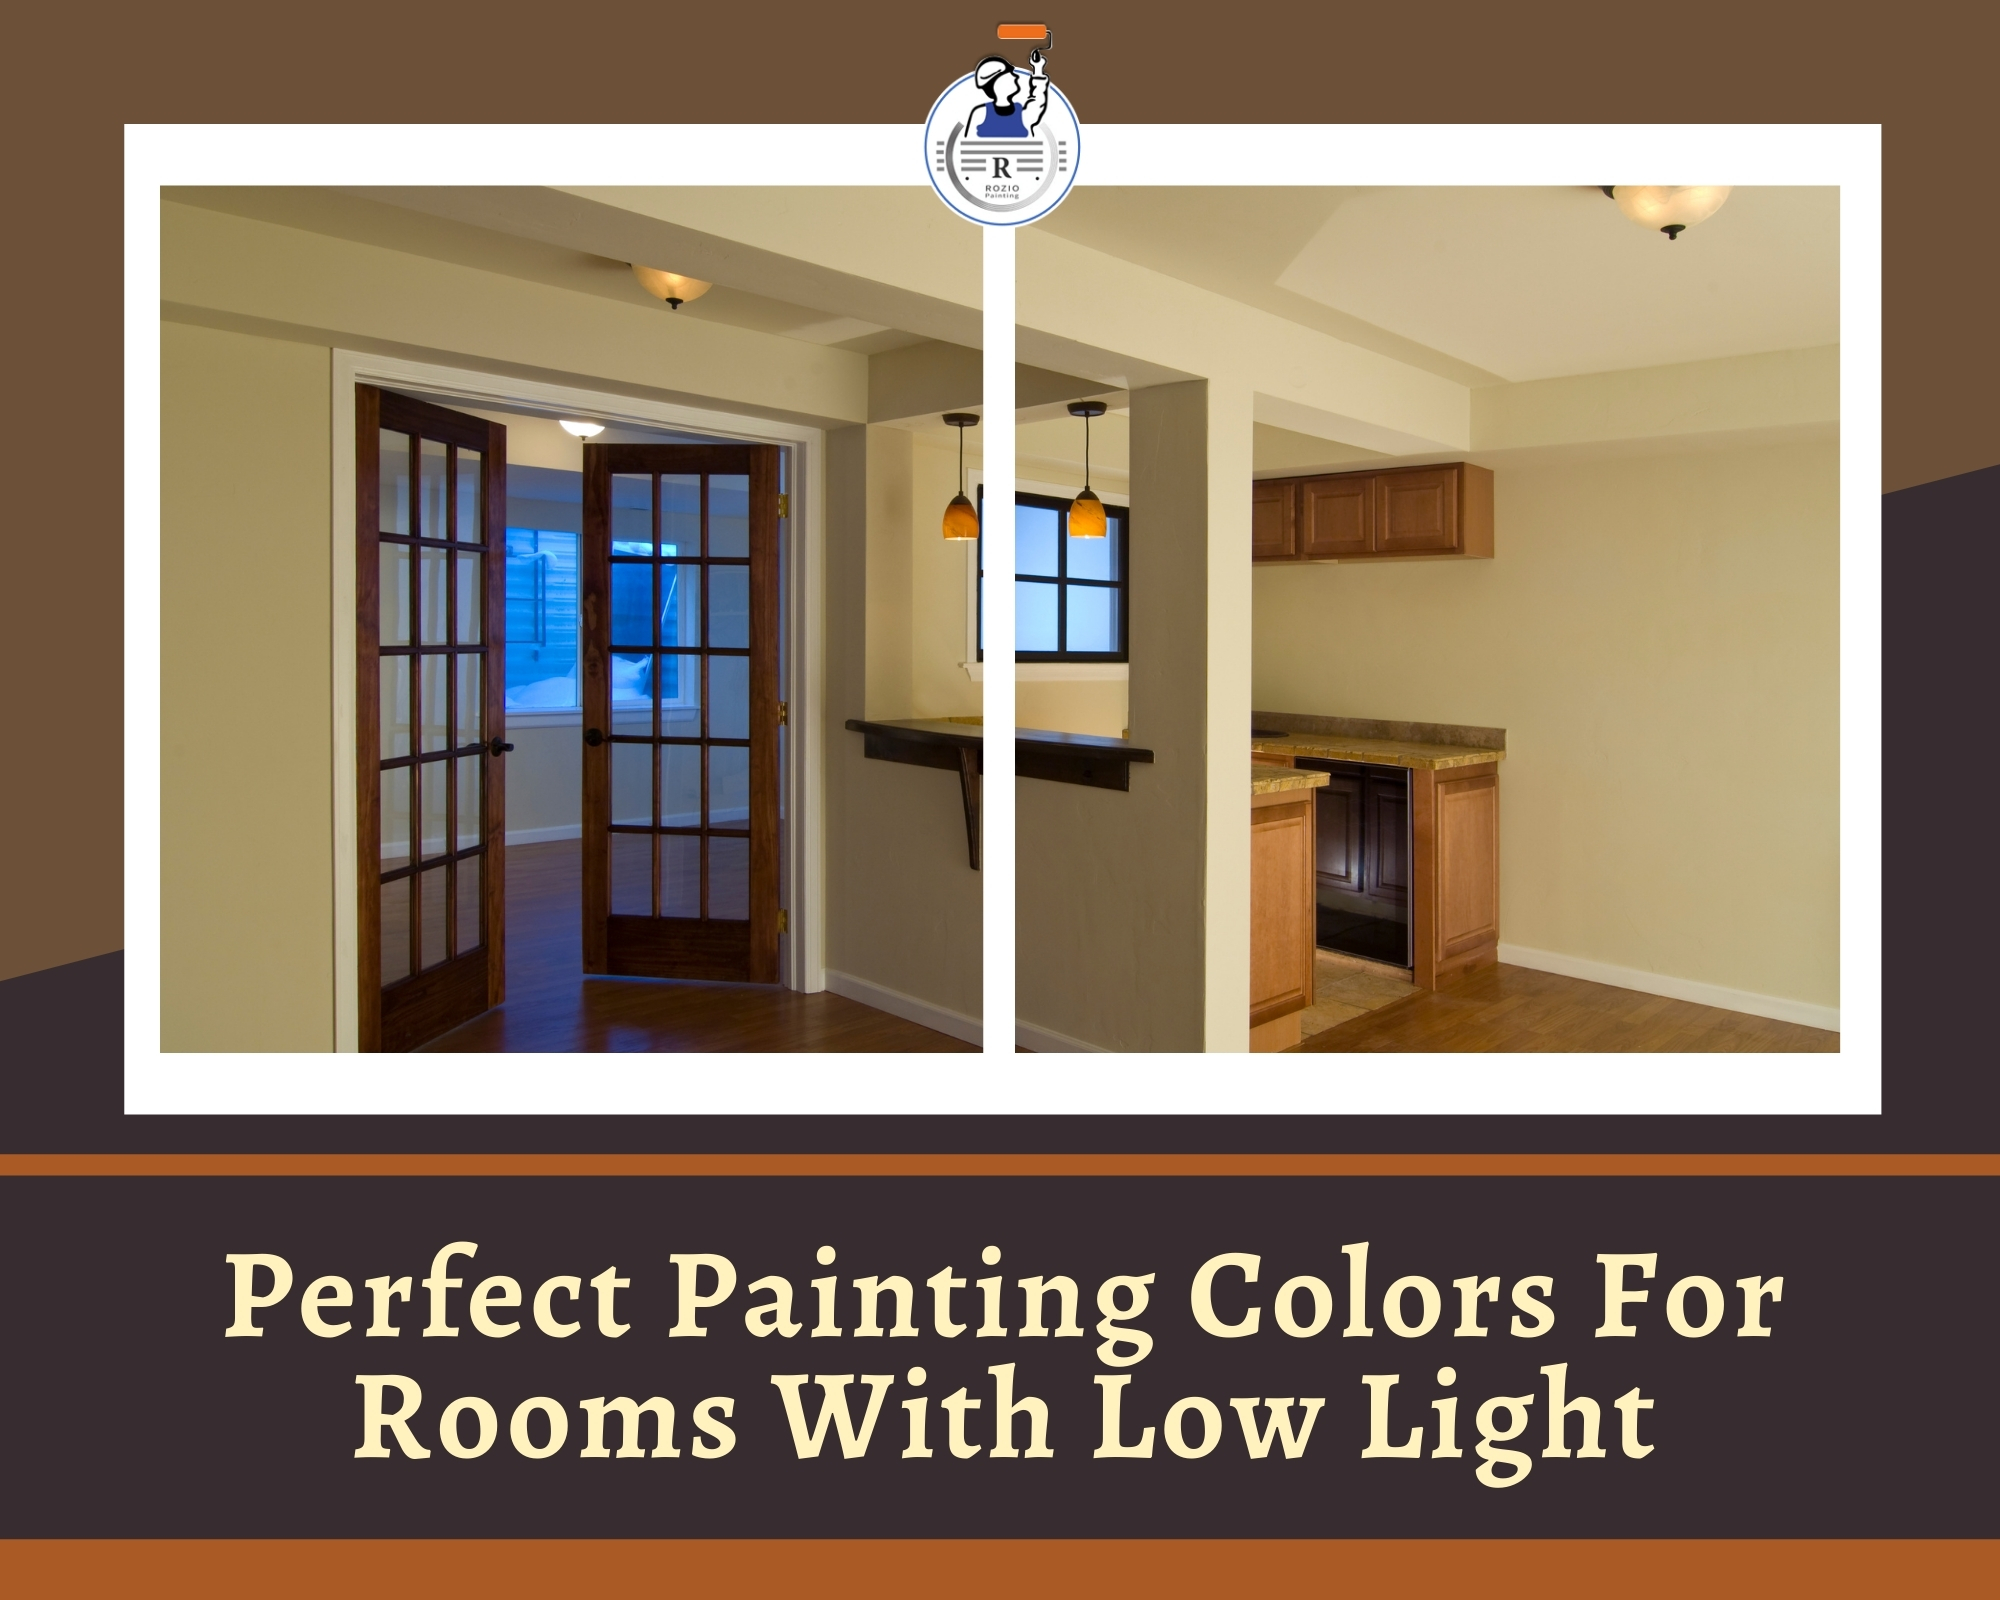 Perfect Painting Colors For Rooms With Low Light